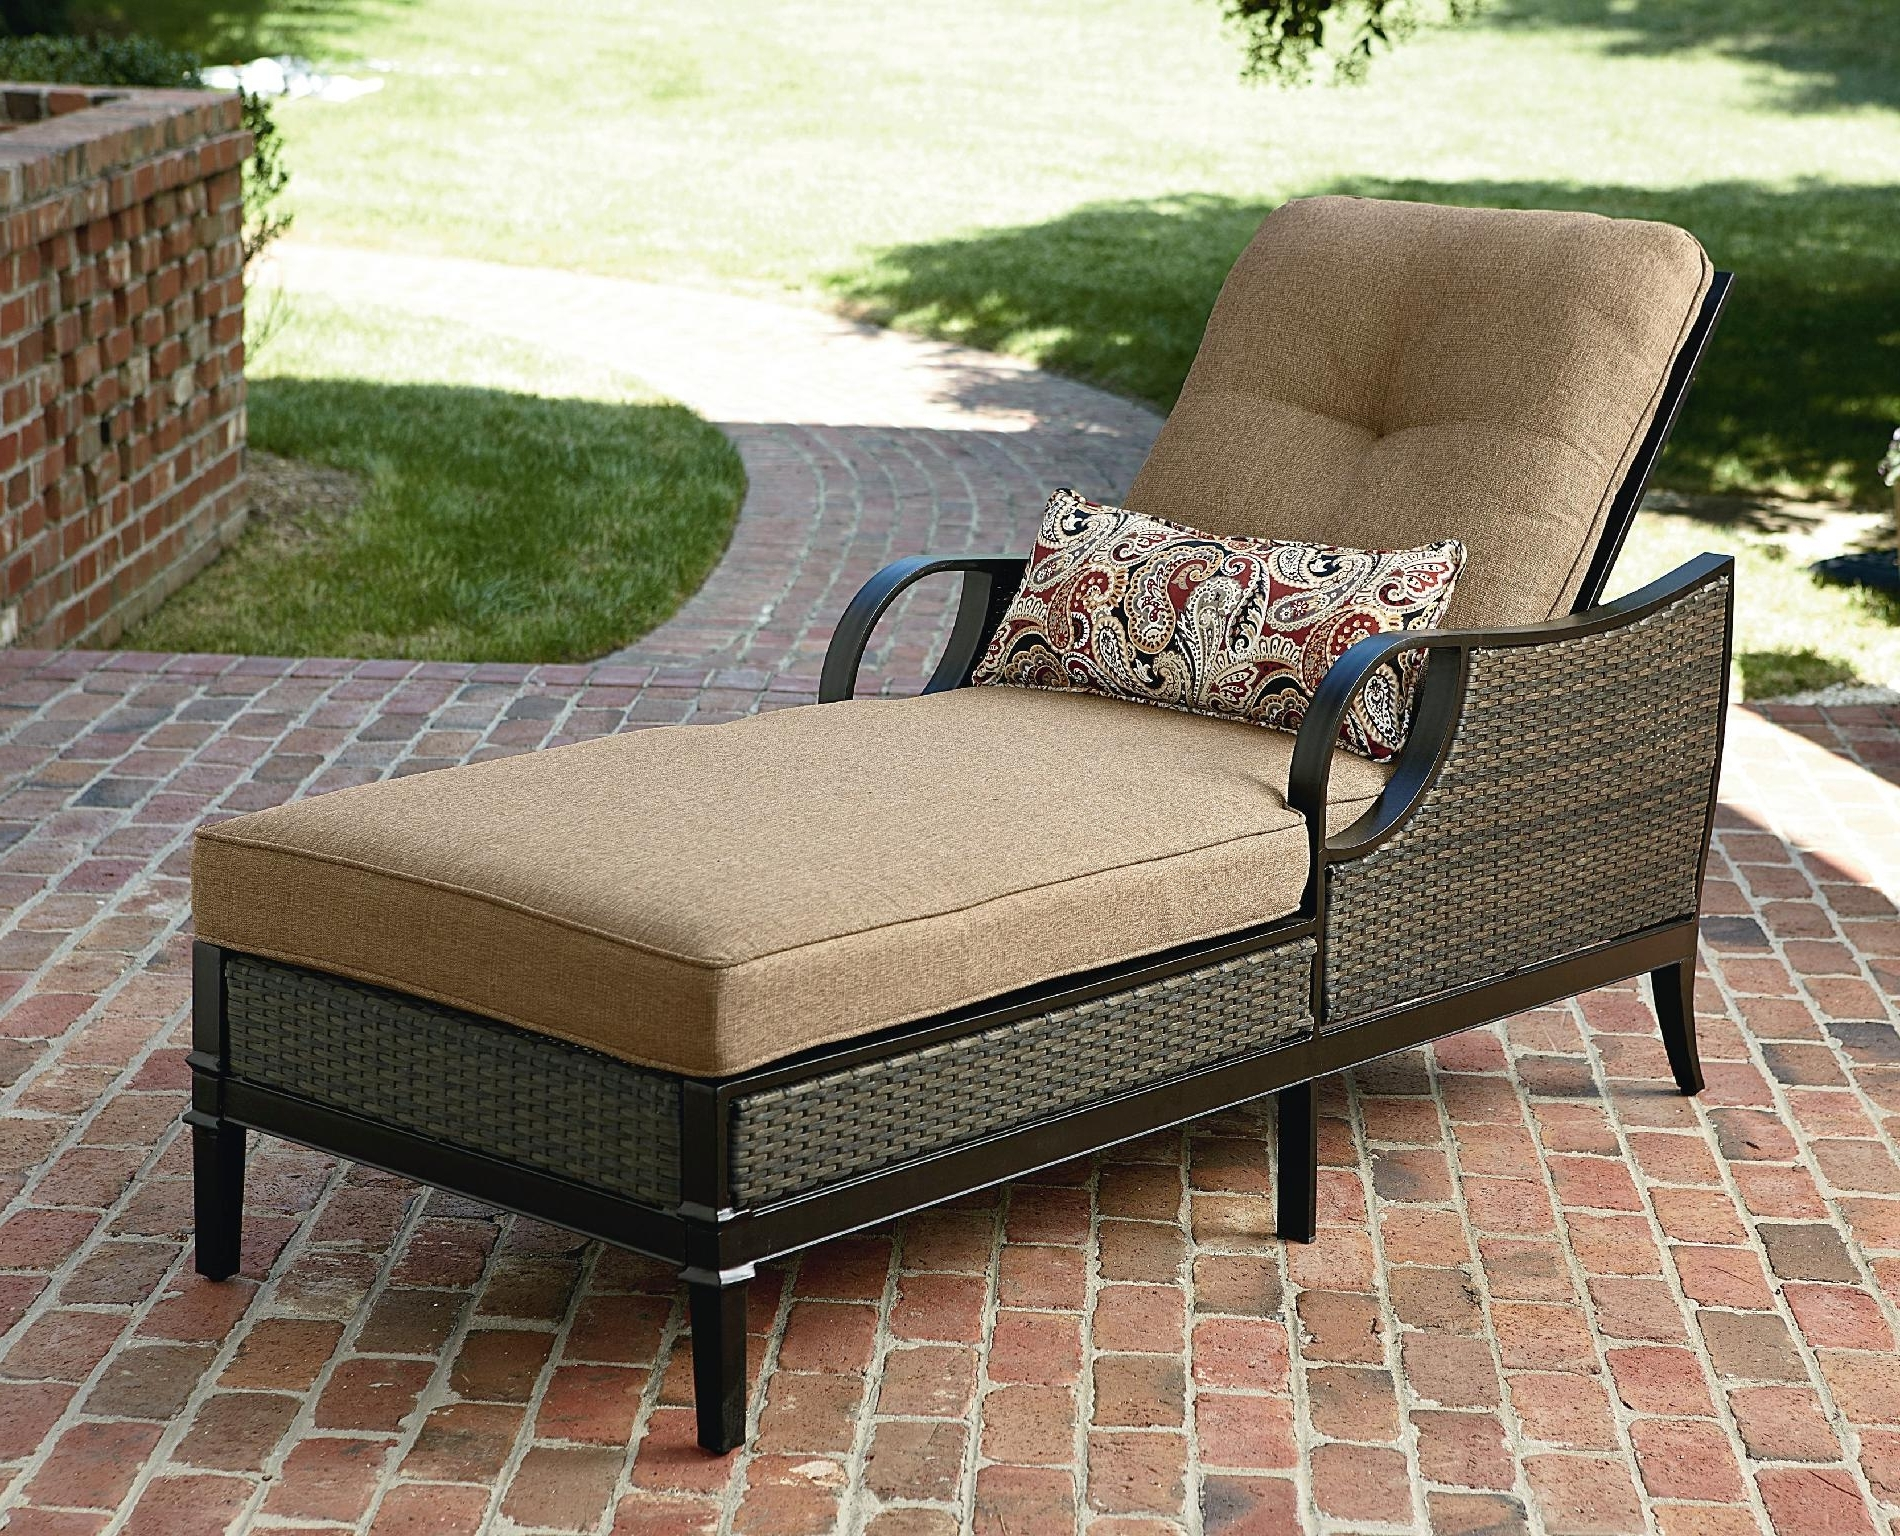 Patio Chaise Lounge Ideas — Optimizing Home Decor Ideas : Amazing Intended For Famous Patio Chaise Lounges (View 9 of 15)